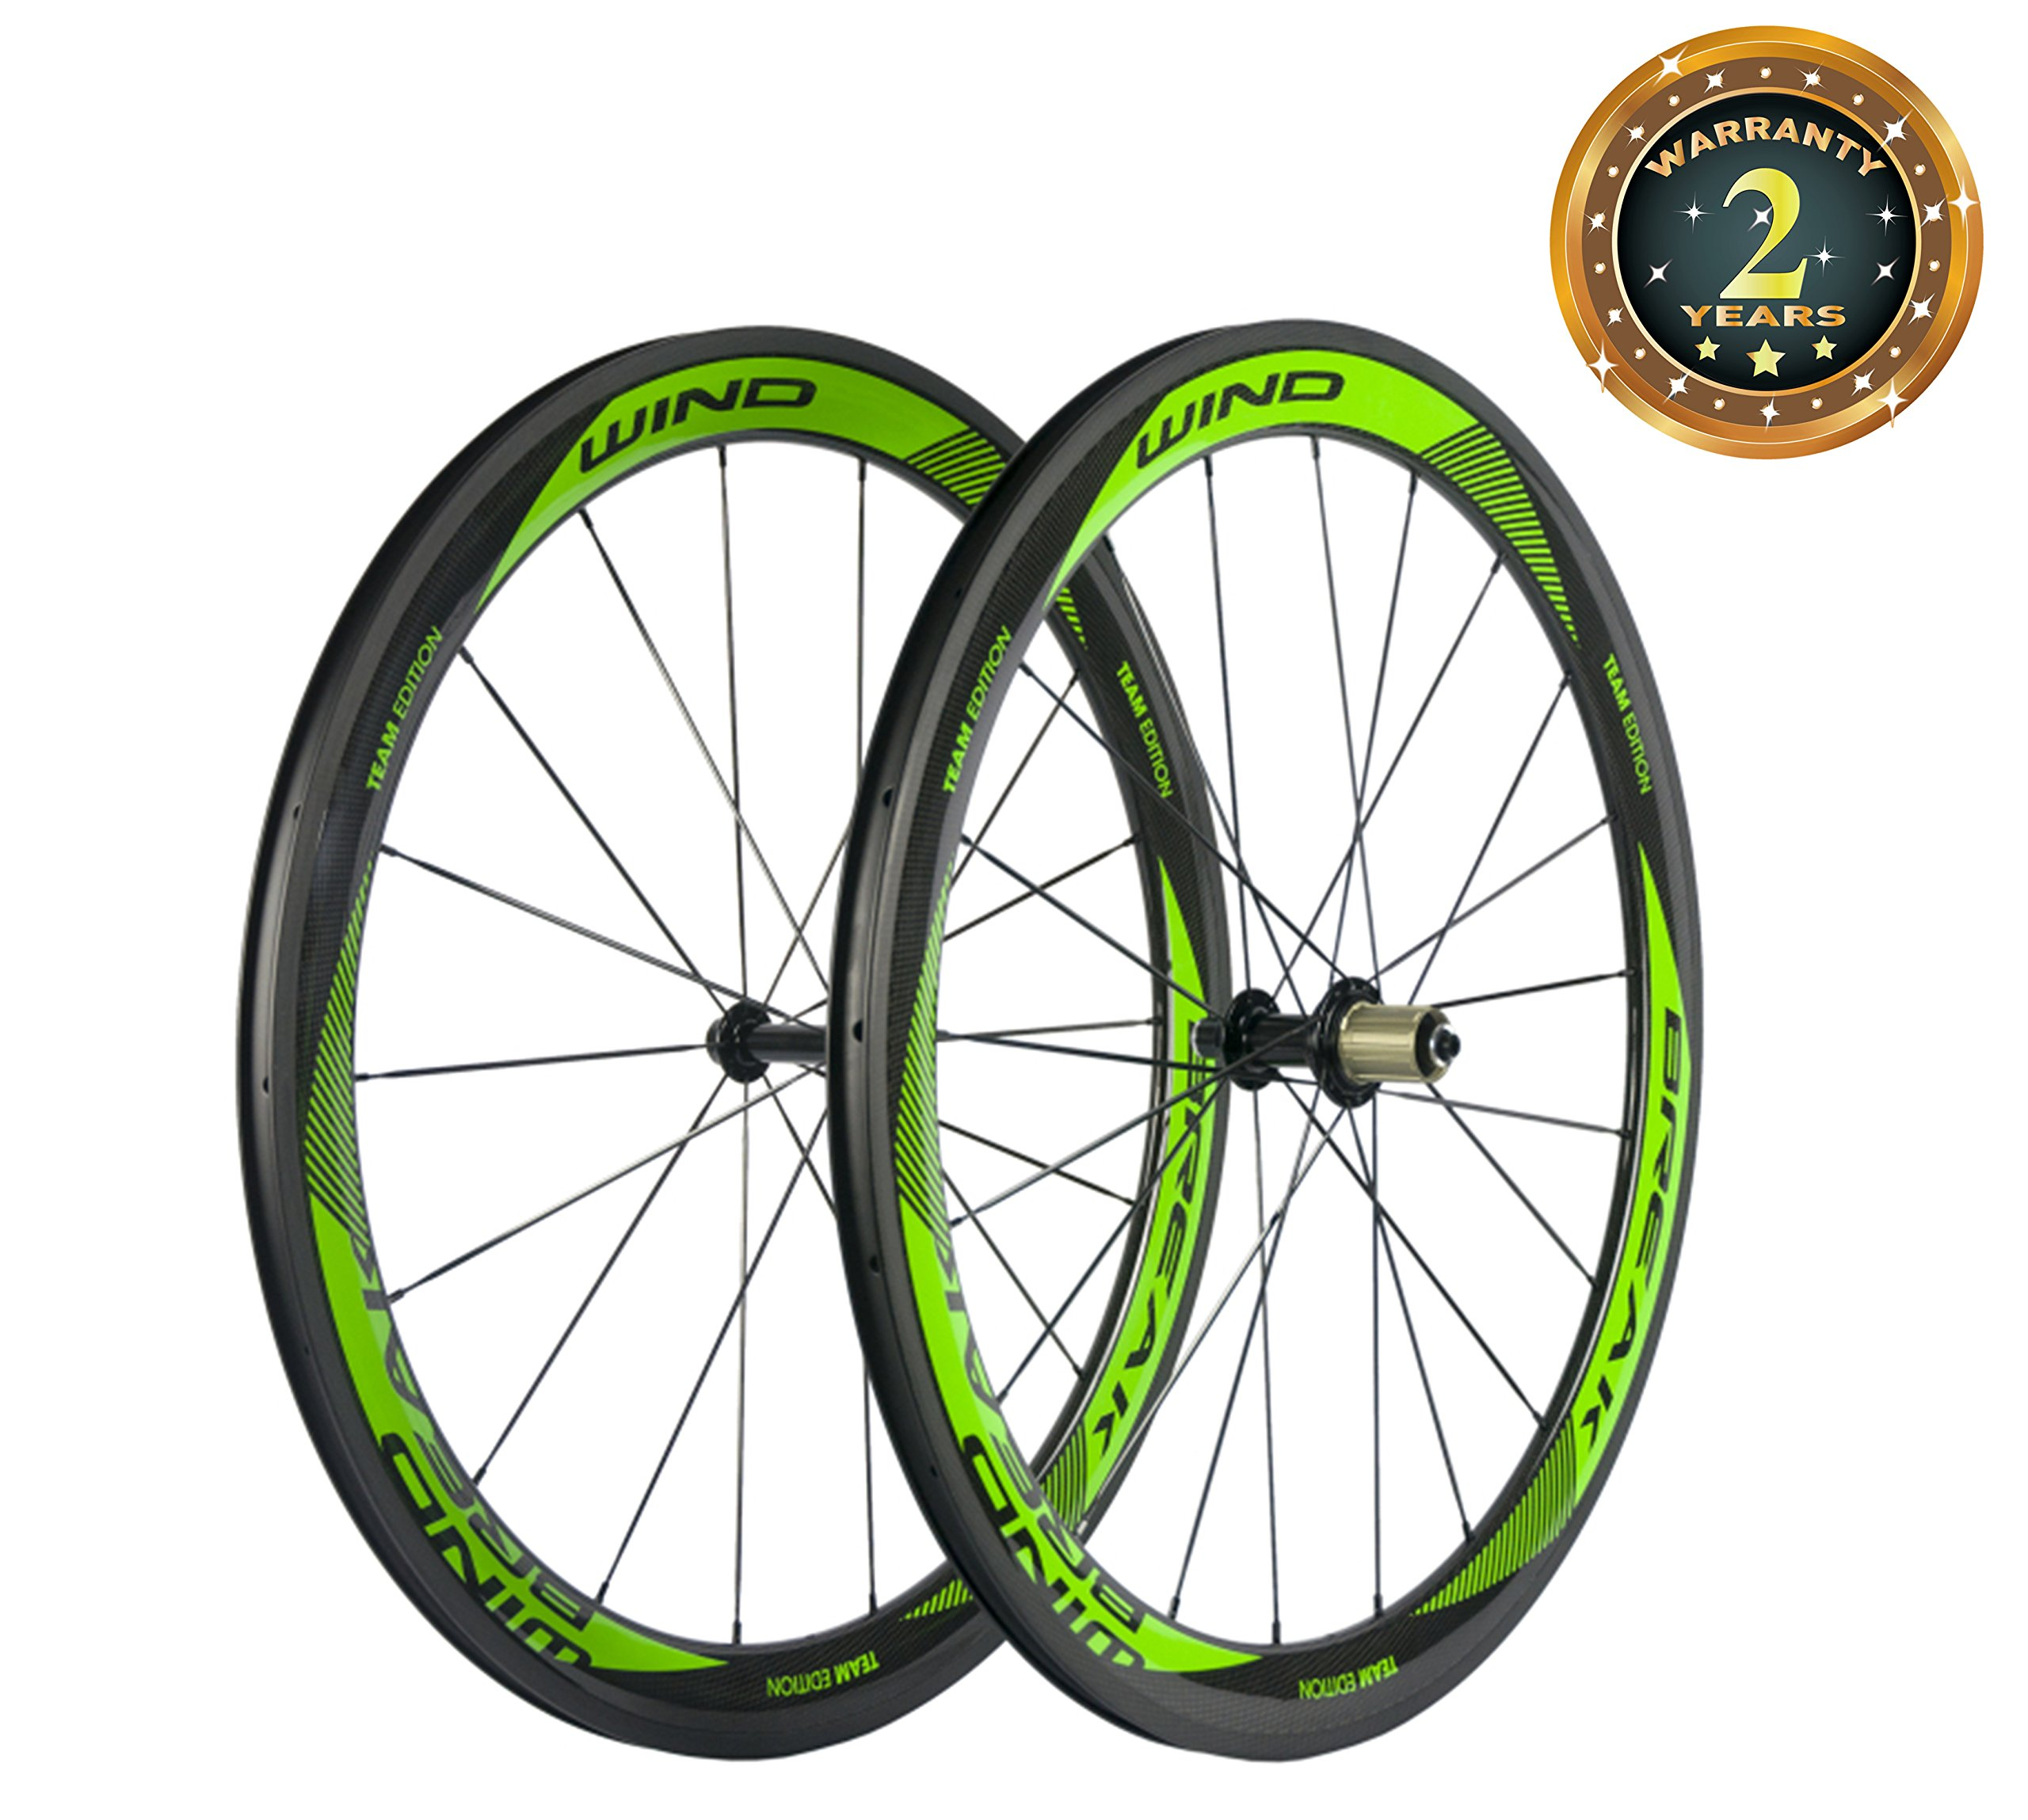 Sunrise Bike Carbon Fiber Road Wheelset Clincher Wheels 50mm Depth R13 Hub Decal Bicycle Rims by SunRise (Image #1)